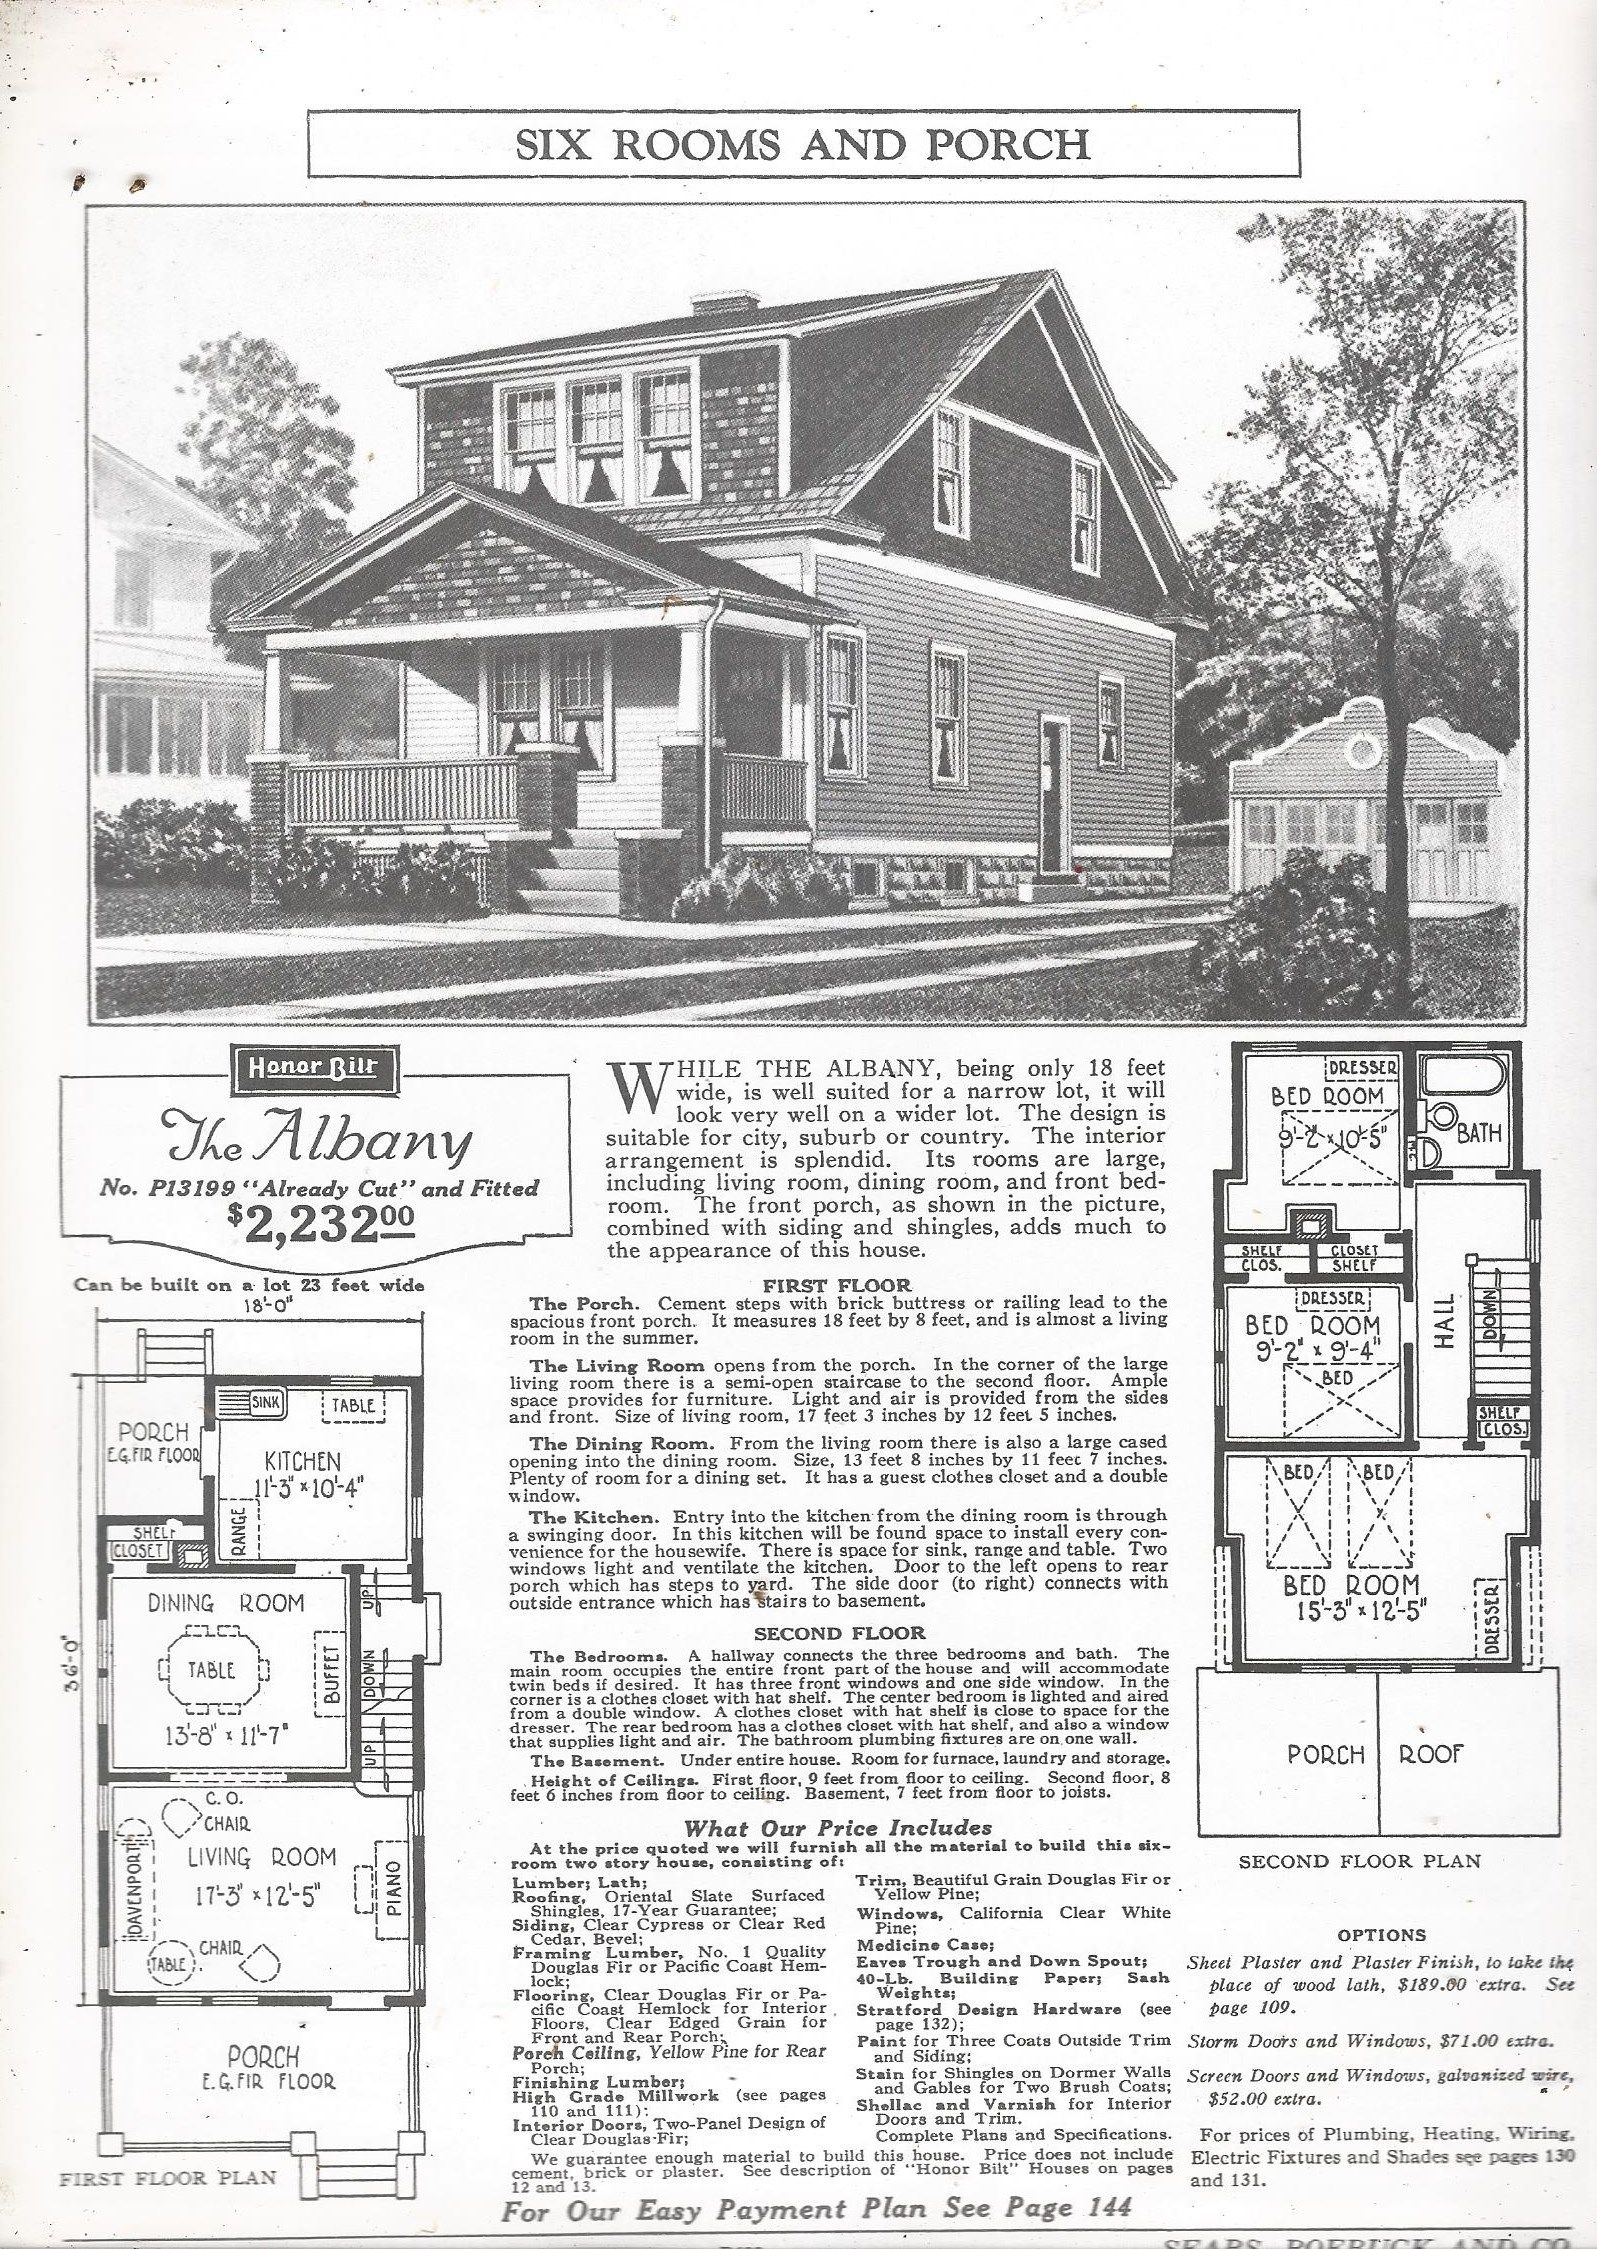 Sears Albany 1926(P13199) Similar to the Auburn   (5) Gabled roof, on landscaping homes, side porch homes, side wall homes, side garage homes, kitchen homes, side entry homes,